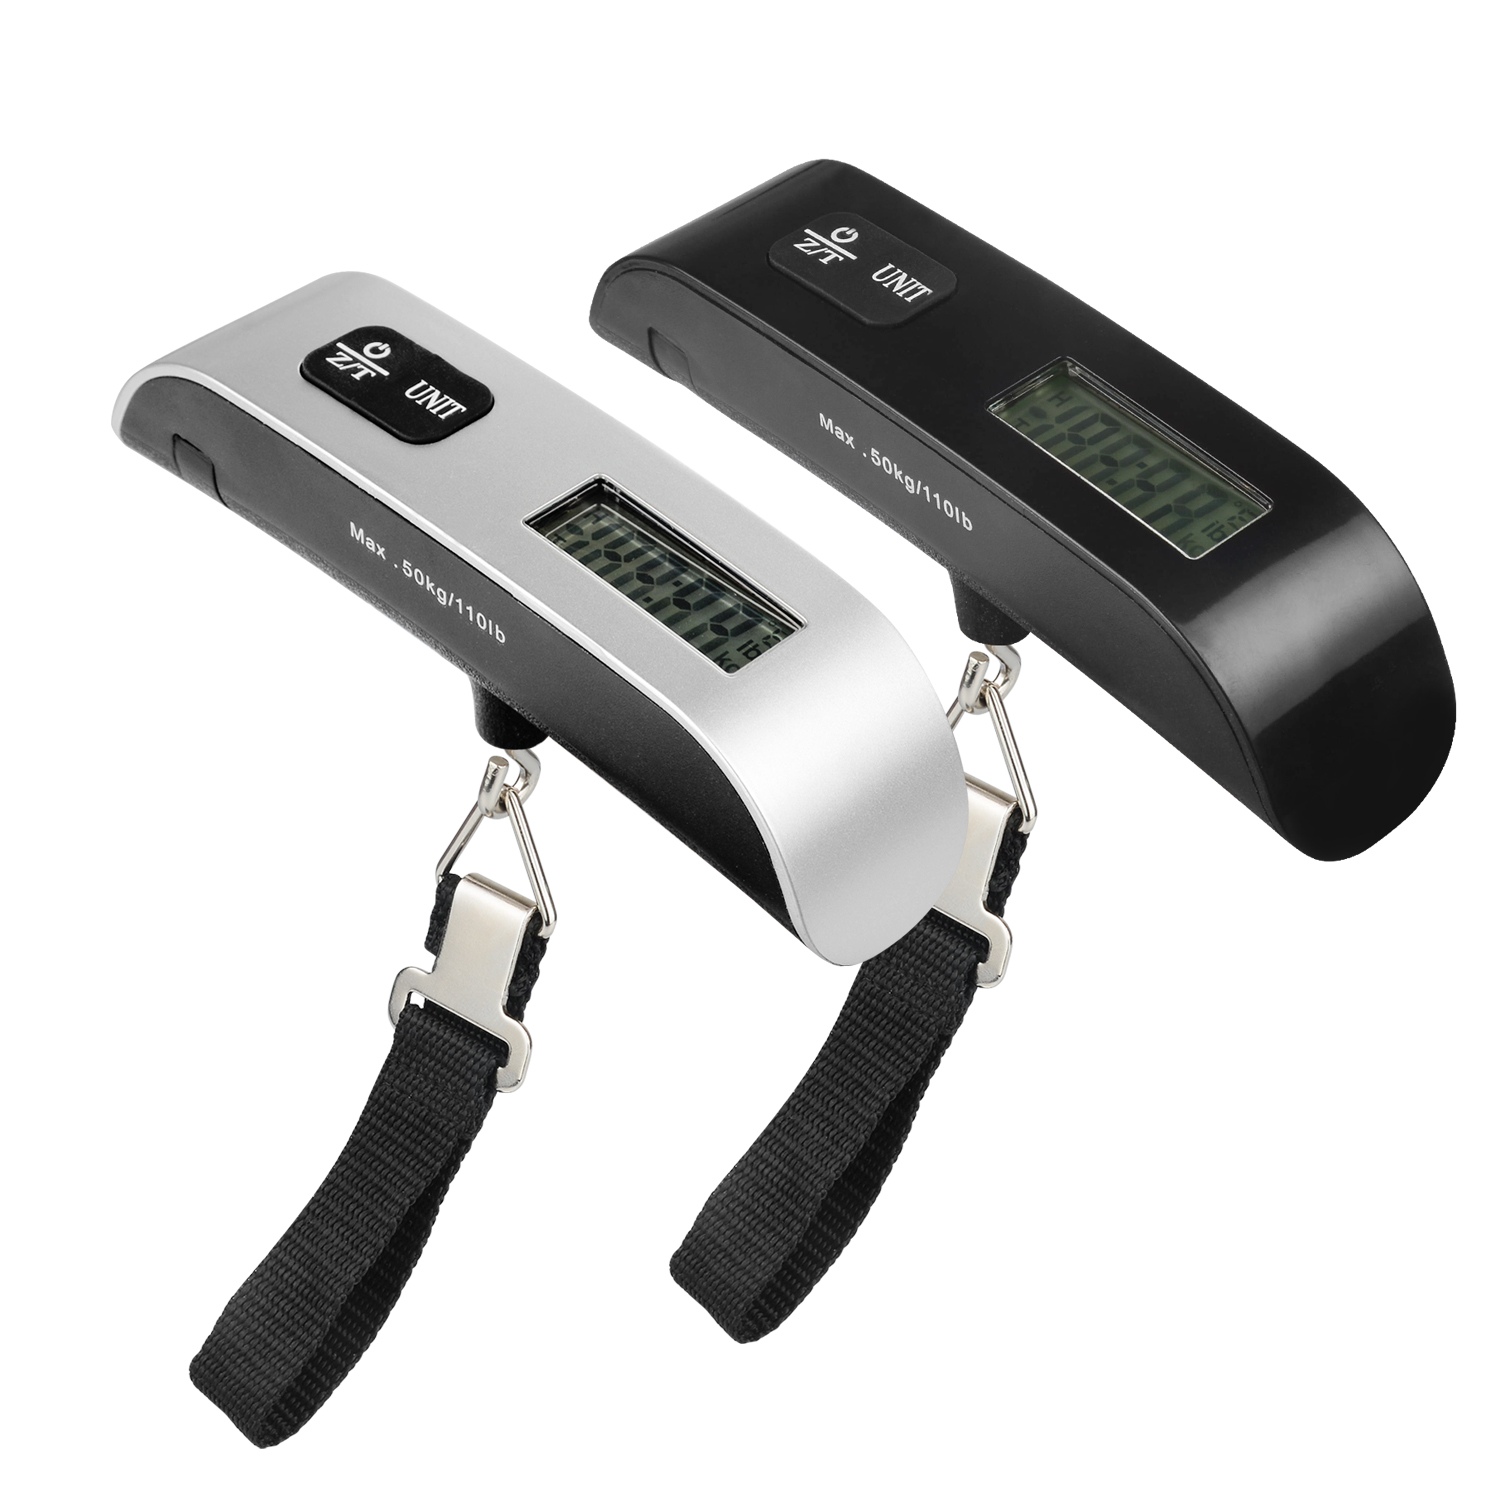 110 Lbs Luggage Scale with Temperature Sensor and Tare Function Gift For Traveler, Silver